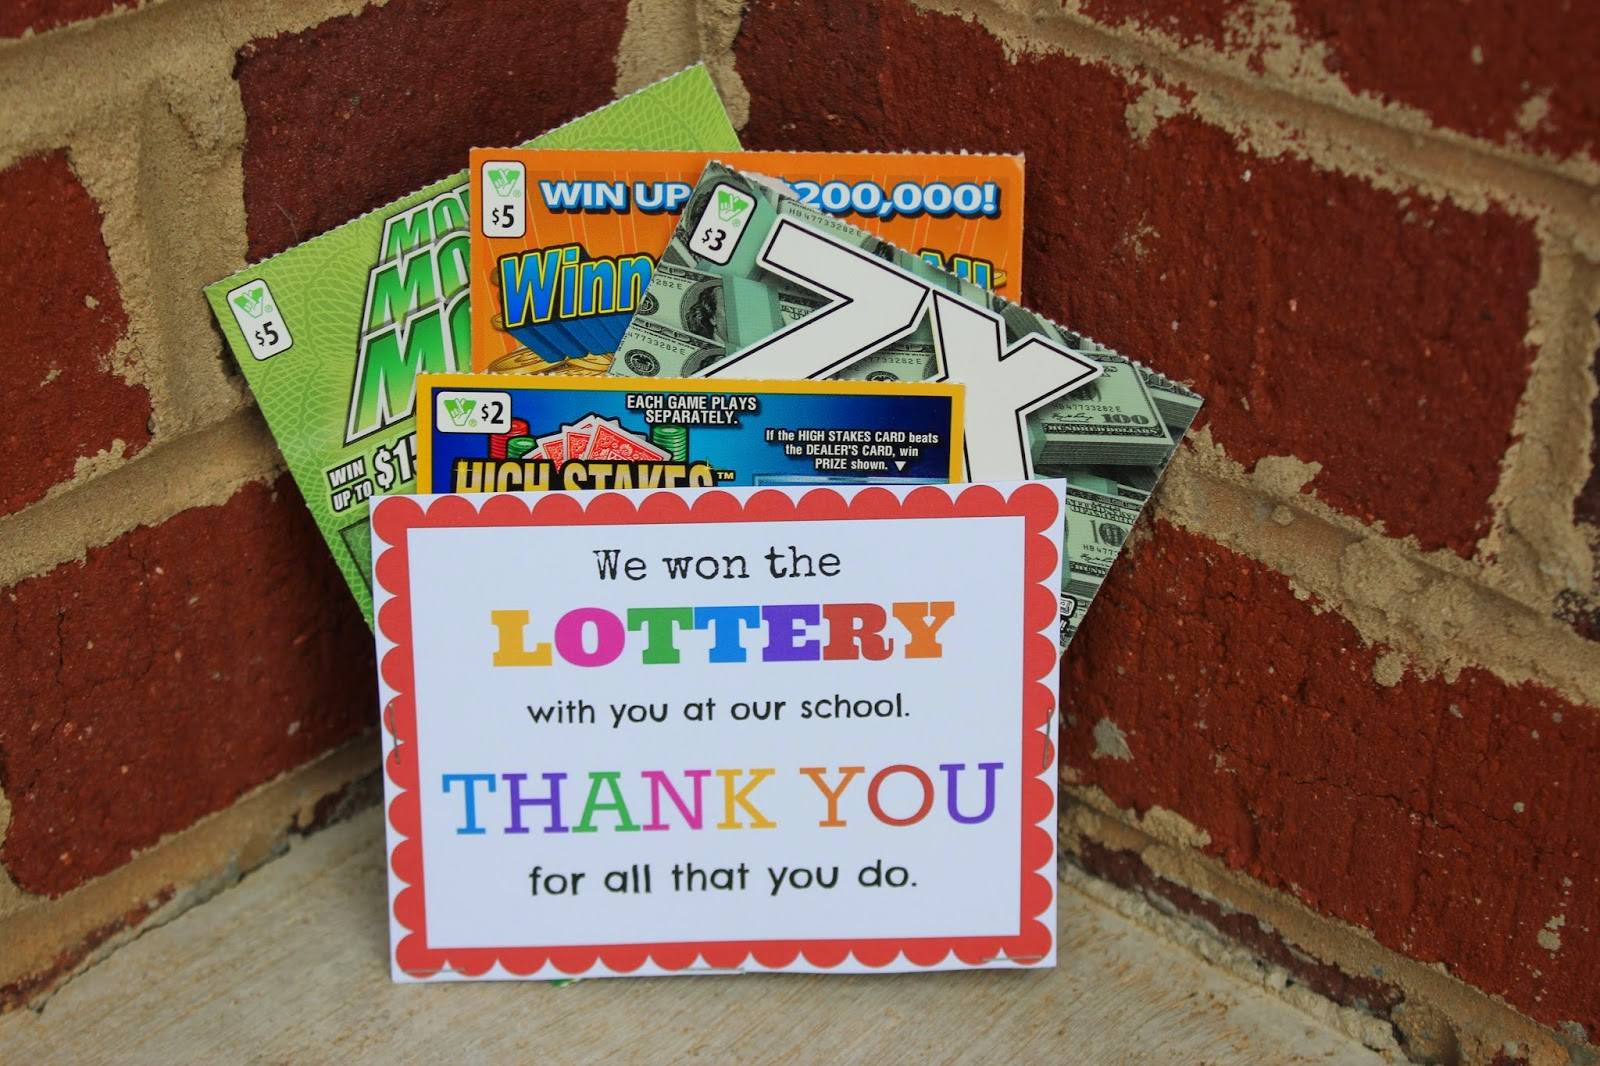 if i won the lottery $10,000 winning keno ticket from 6/9/18 - sold in louisville at bc roosters $10,000 winning keno ticket from 6/7/18 - sold in oak grove at pal's of oak grove.